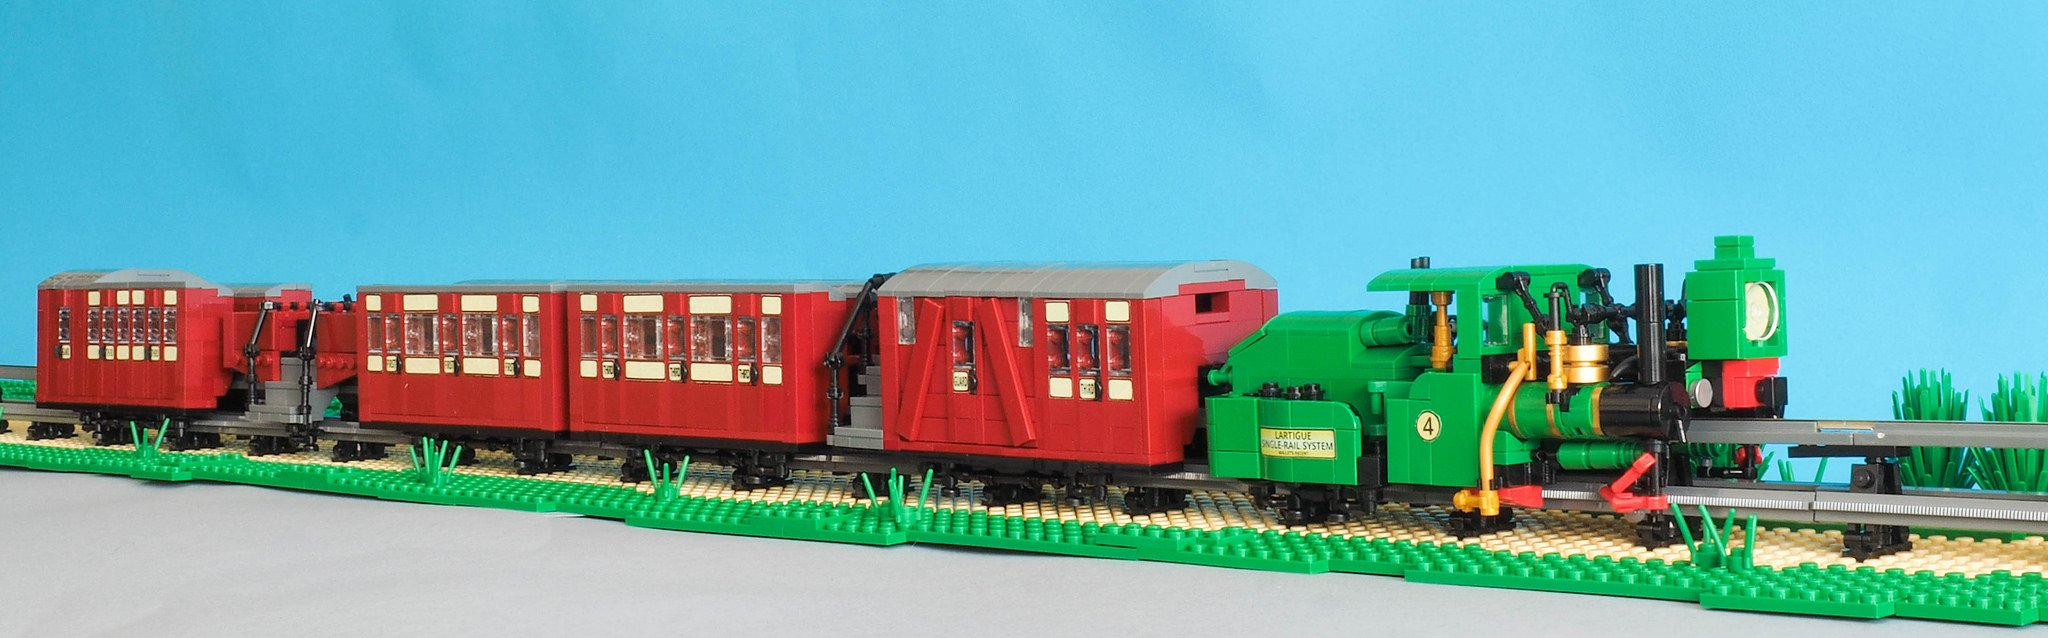 Lartigue Monorail Prototype LEGO Train